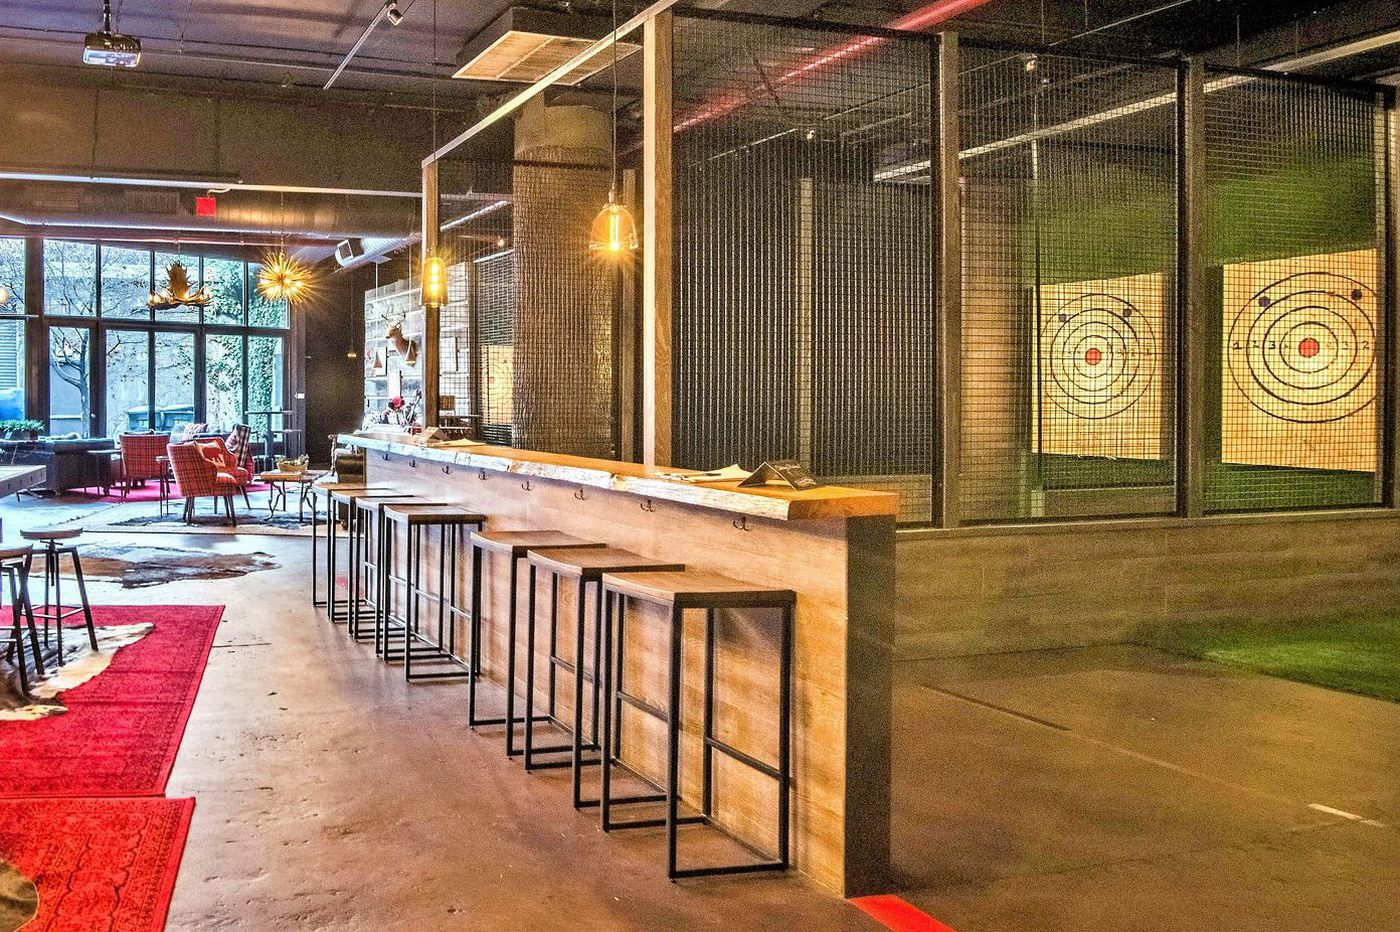 Kick Axe Throwing Sets Its Target Date In Old City